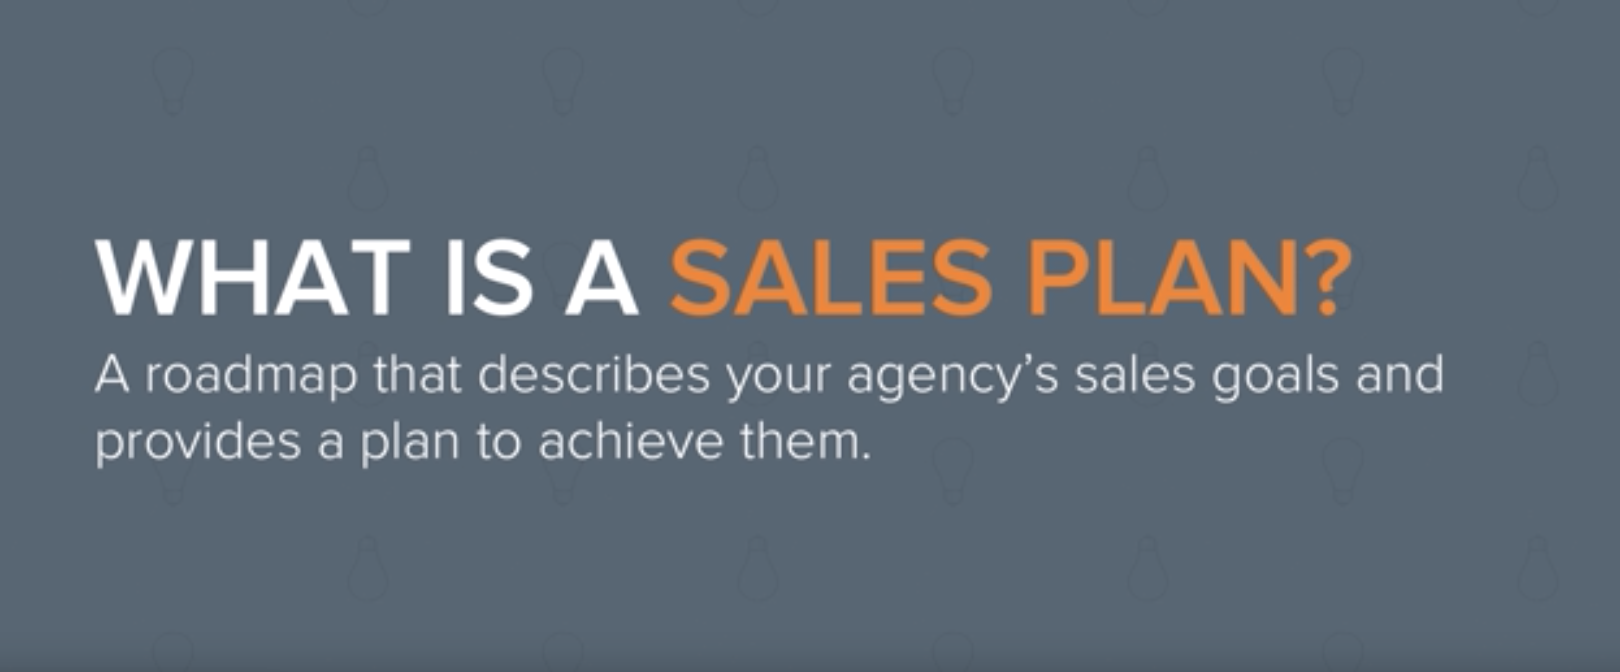 What is a sales plan